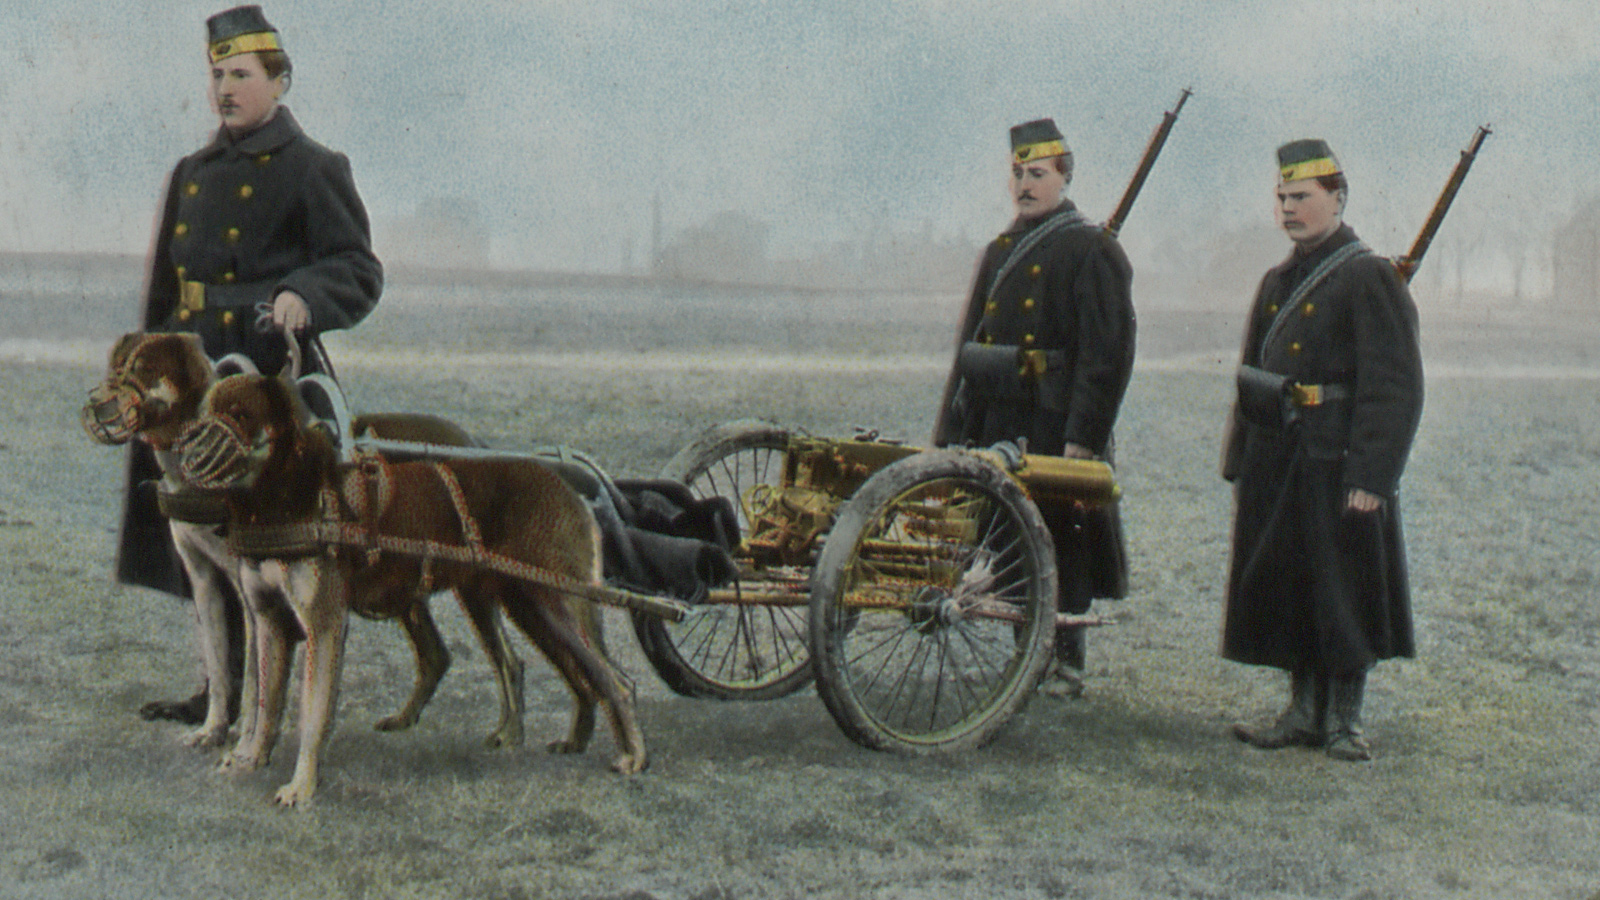 Banner for Animals in war article. A colour photograph that shows 3 soldiers surrounding a small cart with artillery attached. The cart is led by two large dogs wearing muzzles.